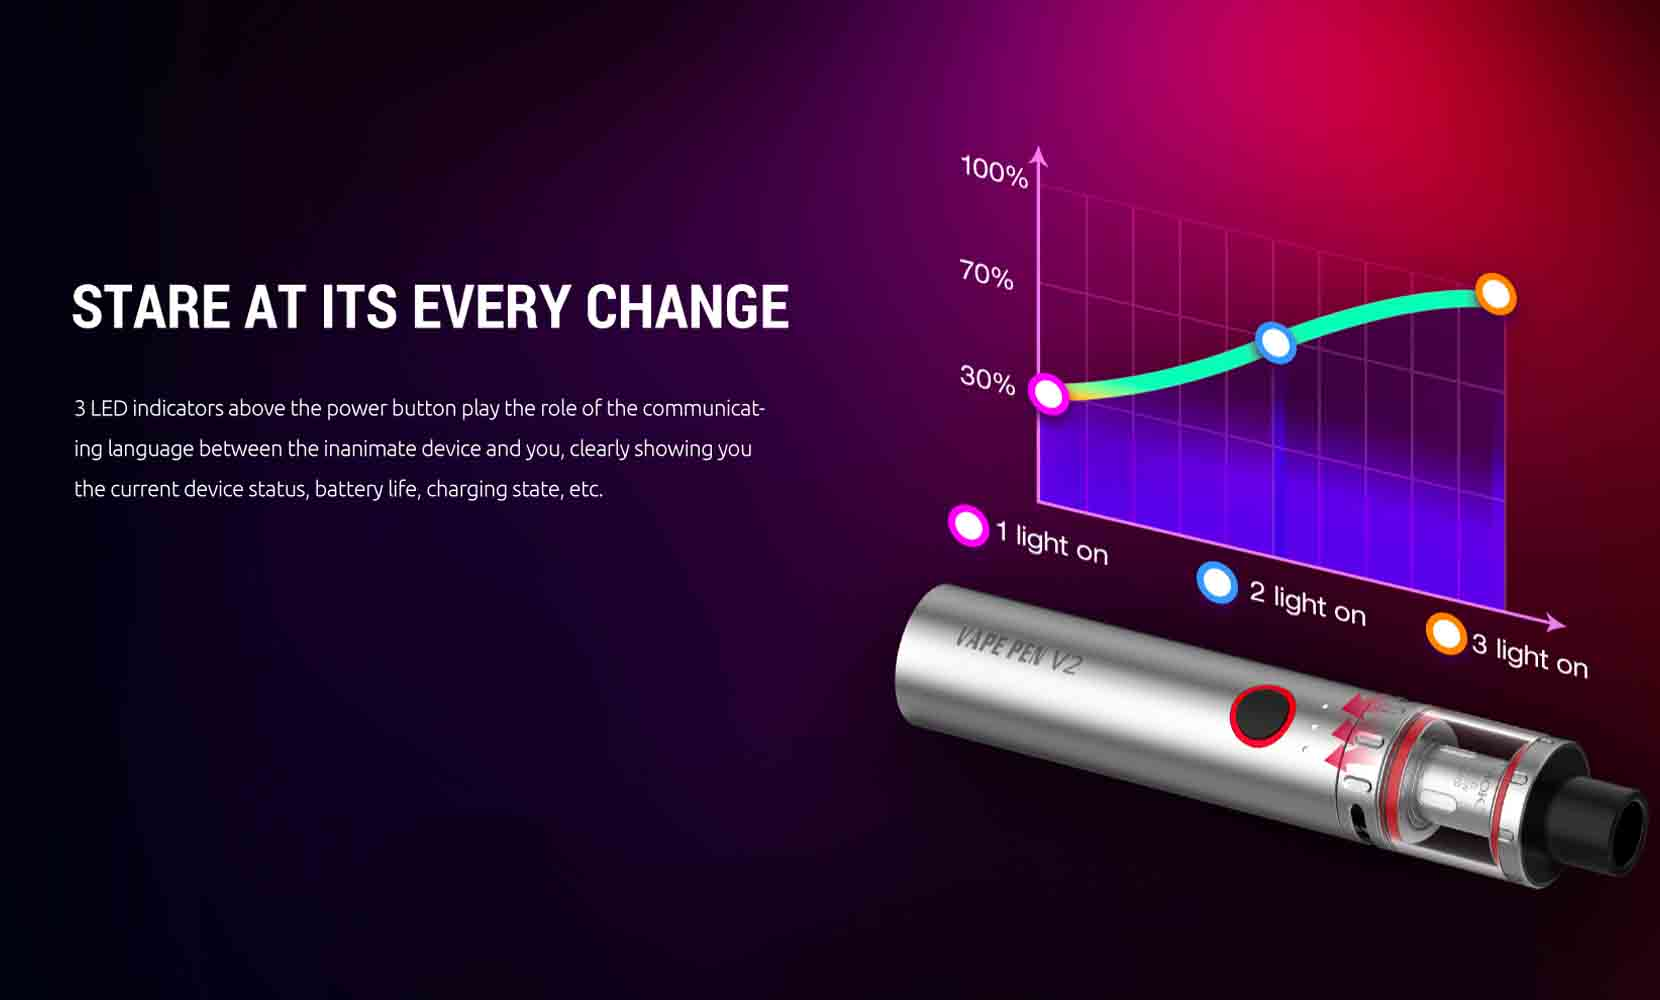 SMOK Vape Pen V2 Starter Kit LED Indicators